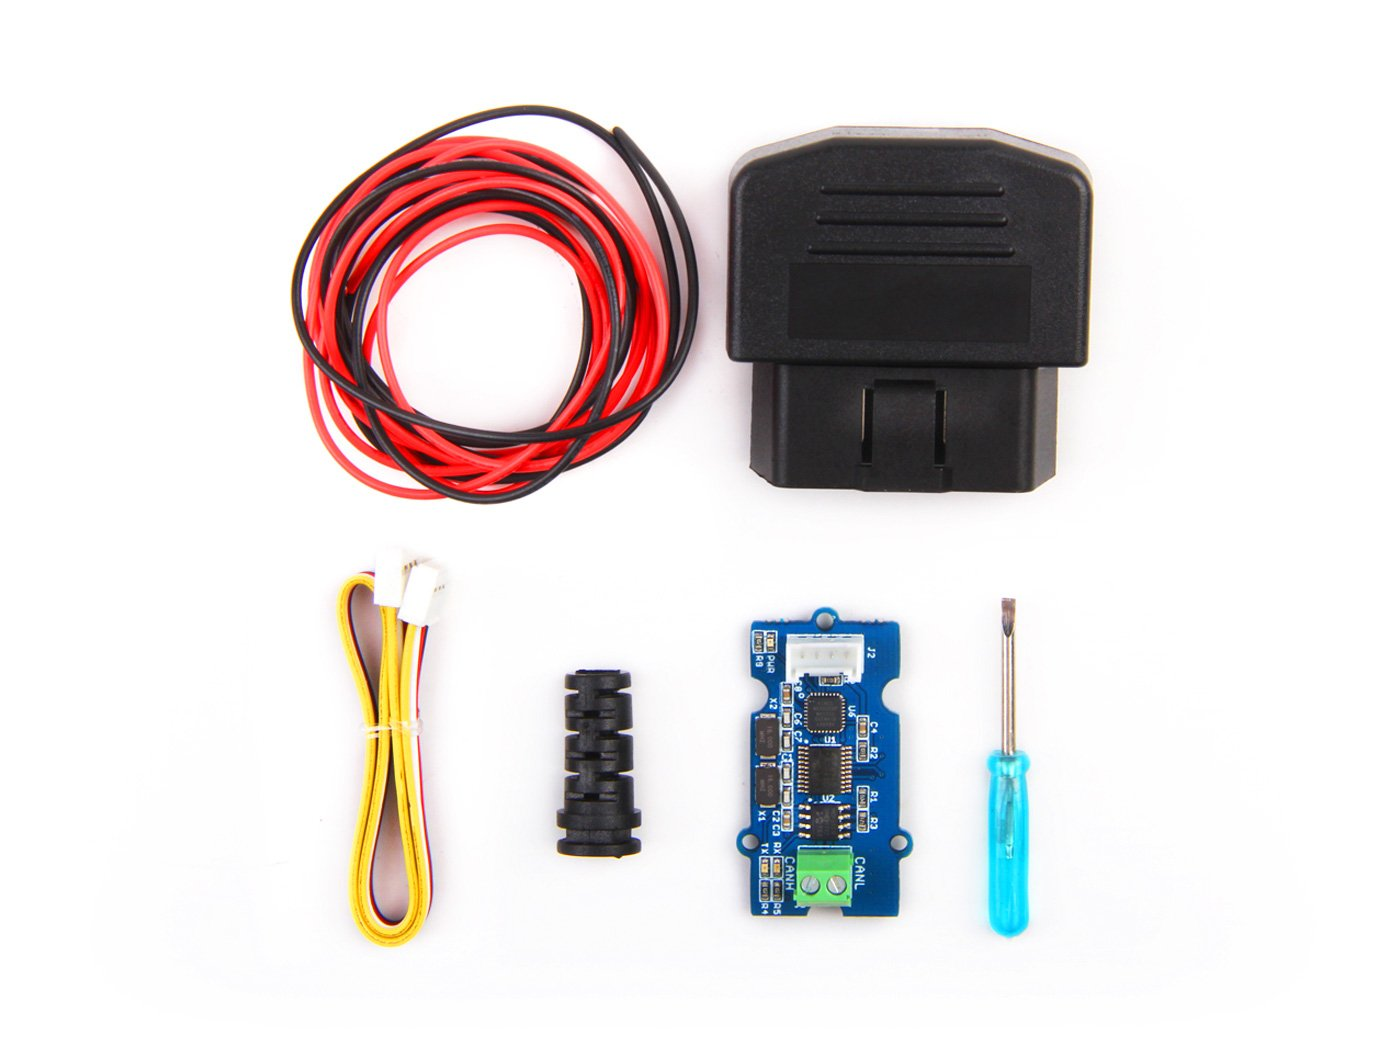 In ZIYUN OBD-II CAN-BUS Development Kit, can get data from your vehicle easily, includes a Serial CAN-BUS module as well as a OBD-II Connector, The kit don't include a controller board The kit don' t include a controller board